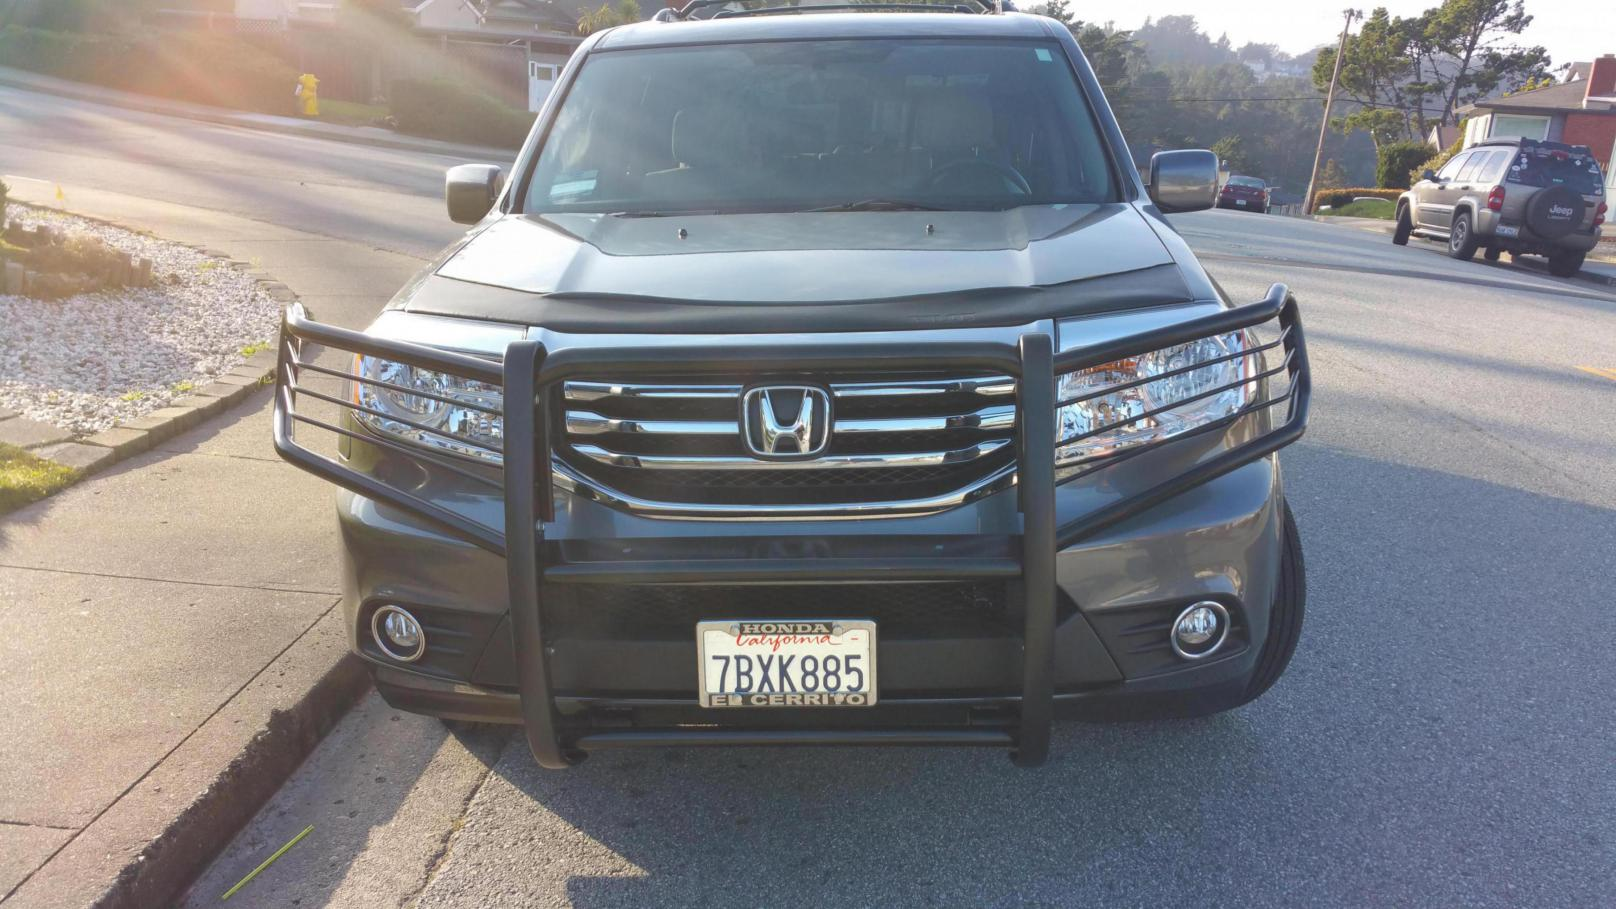 Bull Bar Grille Guard Push Bar Page 2 Honda Pilot